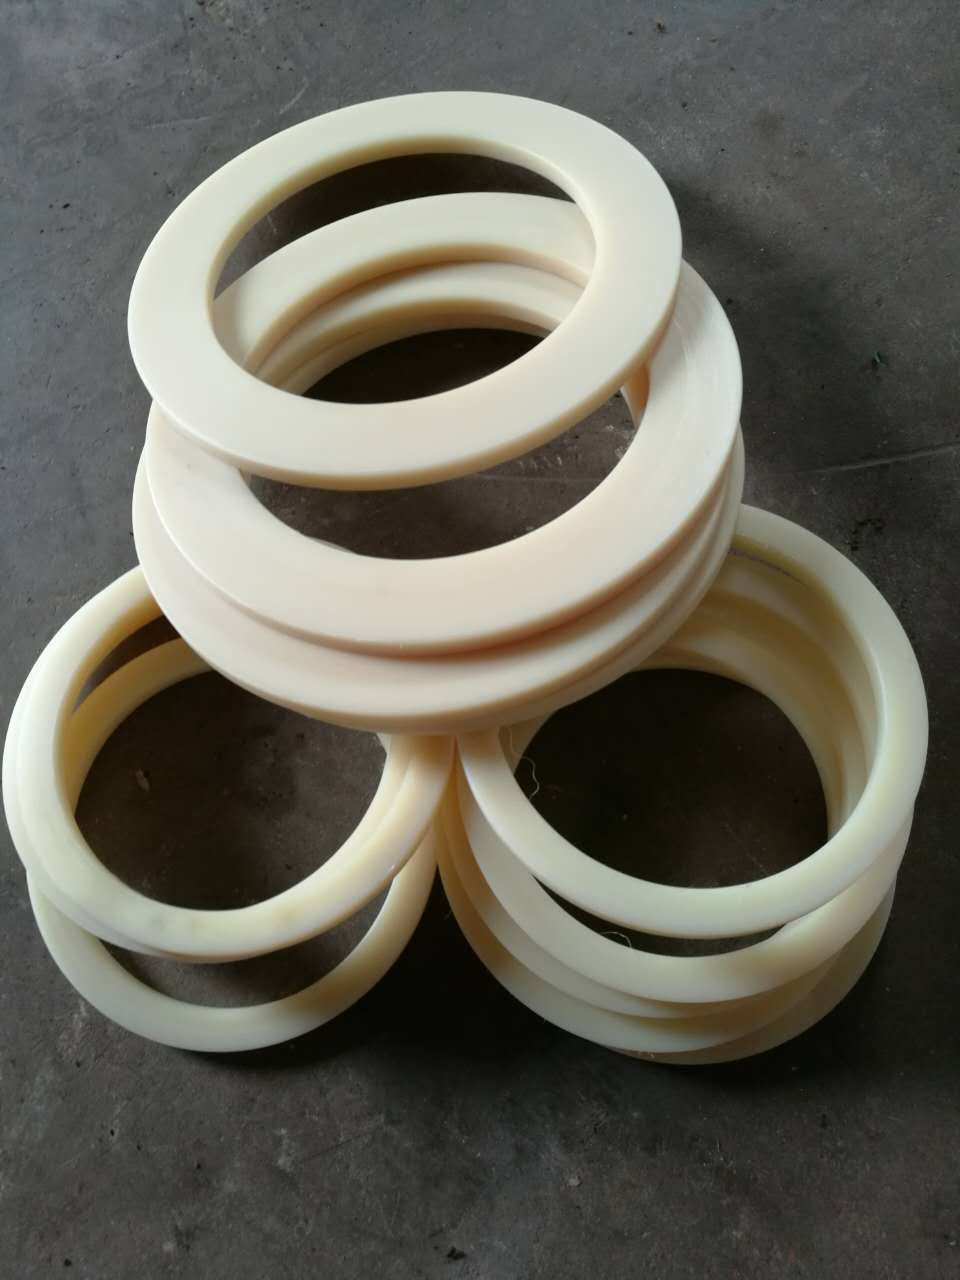 Sell all kinds of fine processing make nylon ring